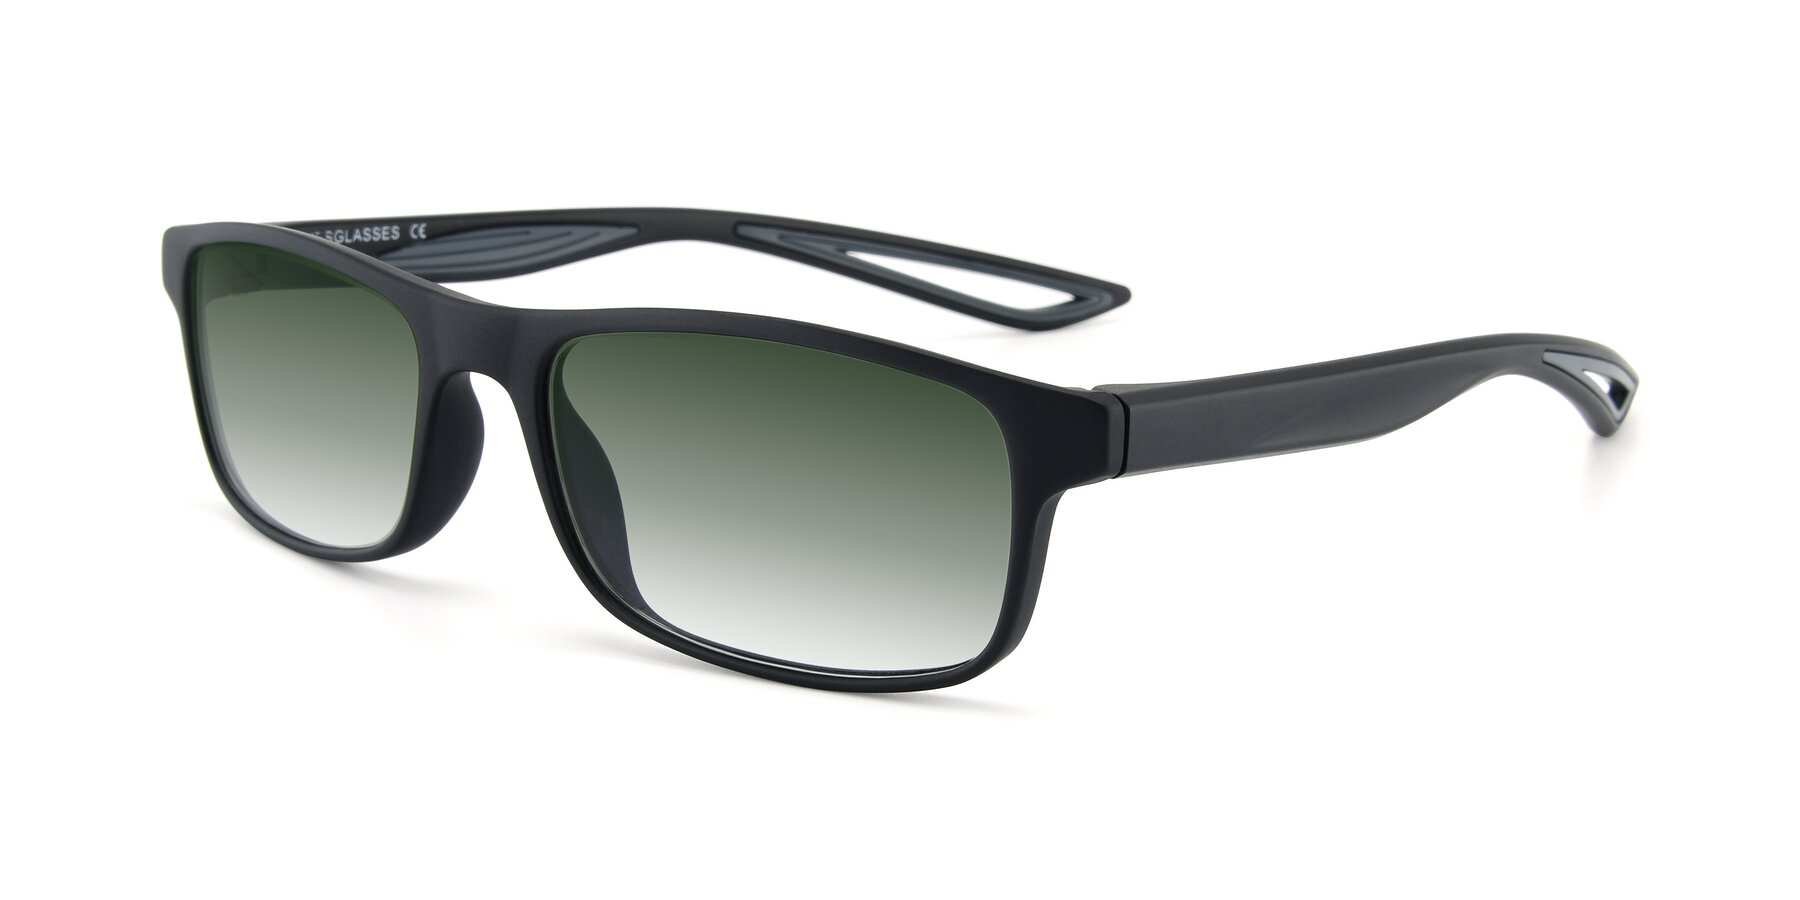 Angle of AC4679 in Matte Black-Gray with Green Gradient Lenses